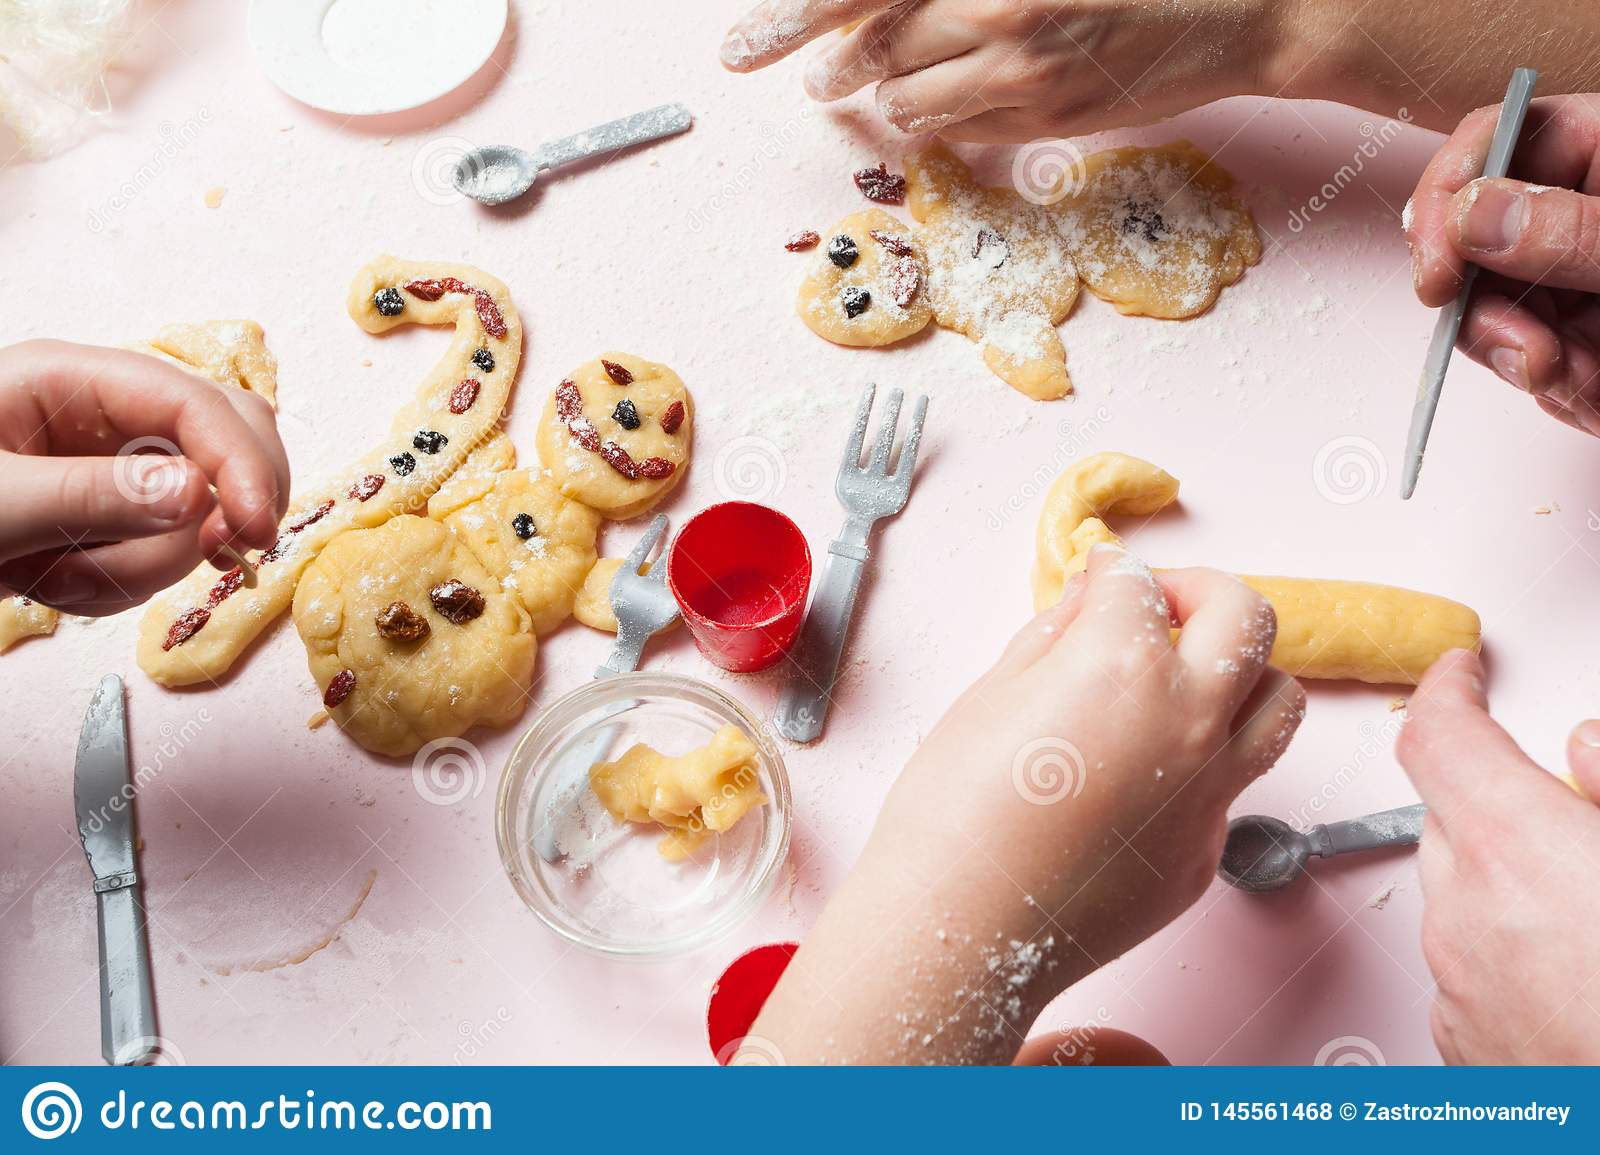 The whole family is preparing Christmas buns. Christmas cookies and gingerbread in the form of snowmen. Preparing for Christmas